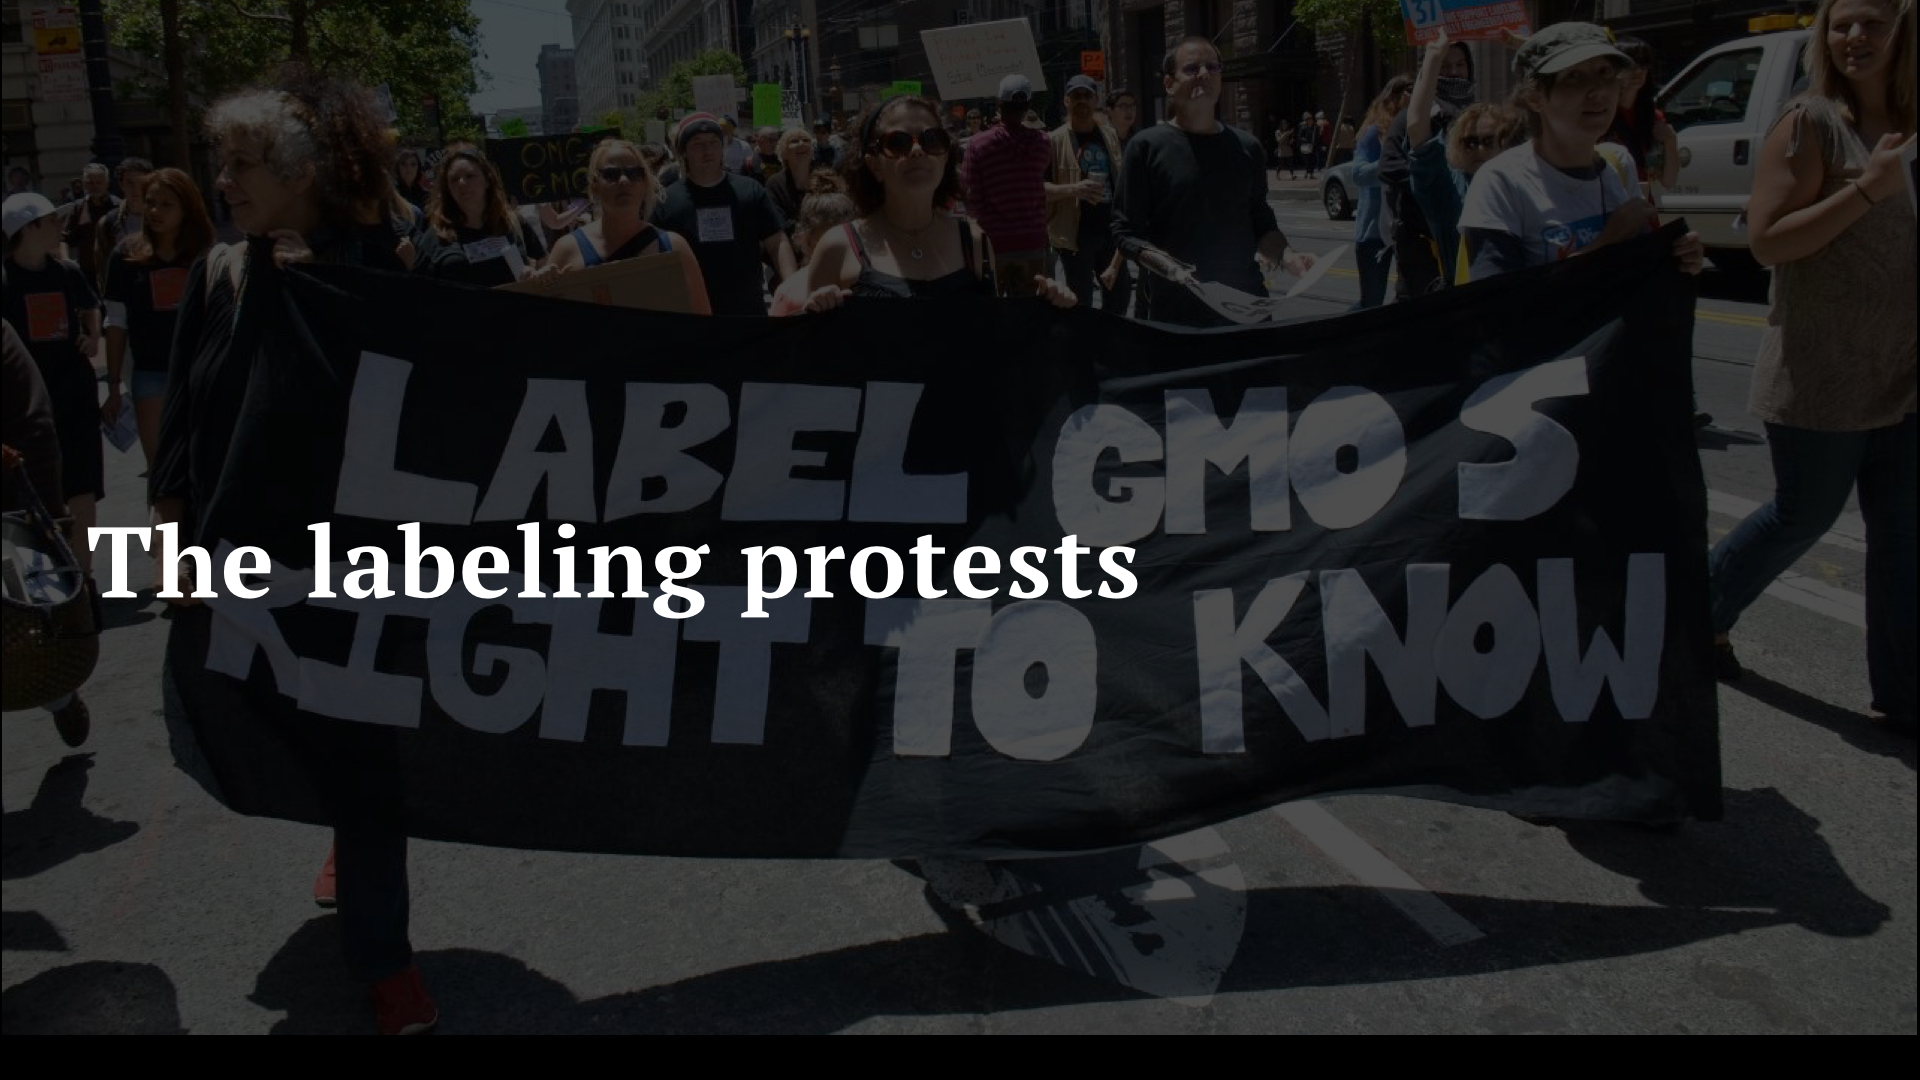 GMOs have put the American people in a state of outrage, leading to strong protests around mandatory GMO-labelling. And in response the Big Food companies have done little to add clarity and transparency to these issues. Labelling in America continues to be a cause of consumer distress